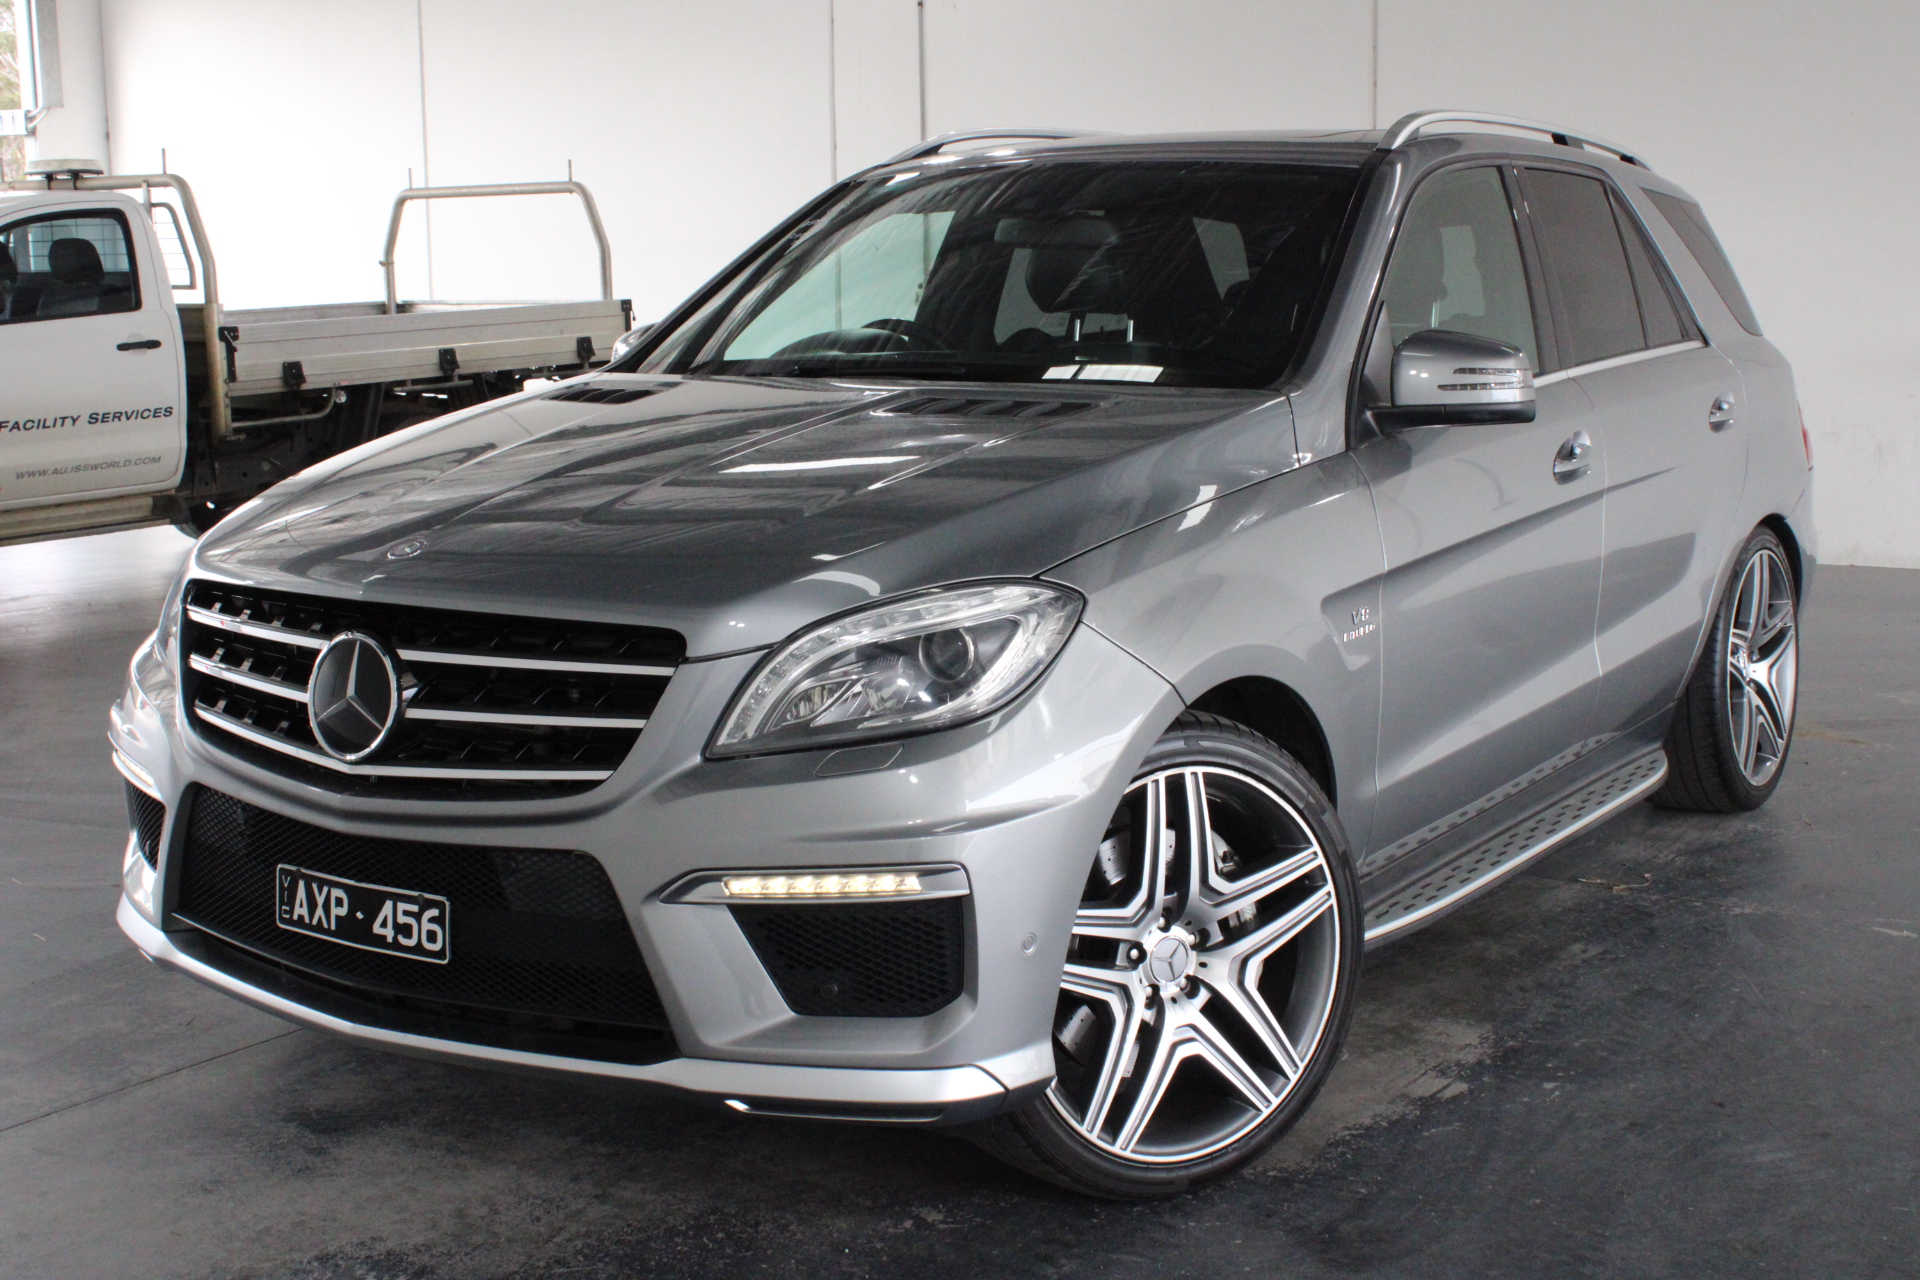 2012 Mercedes Benz ML63 AMG W166 Automatic Wagon (WOVR Inspected)